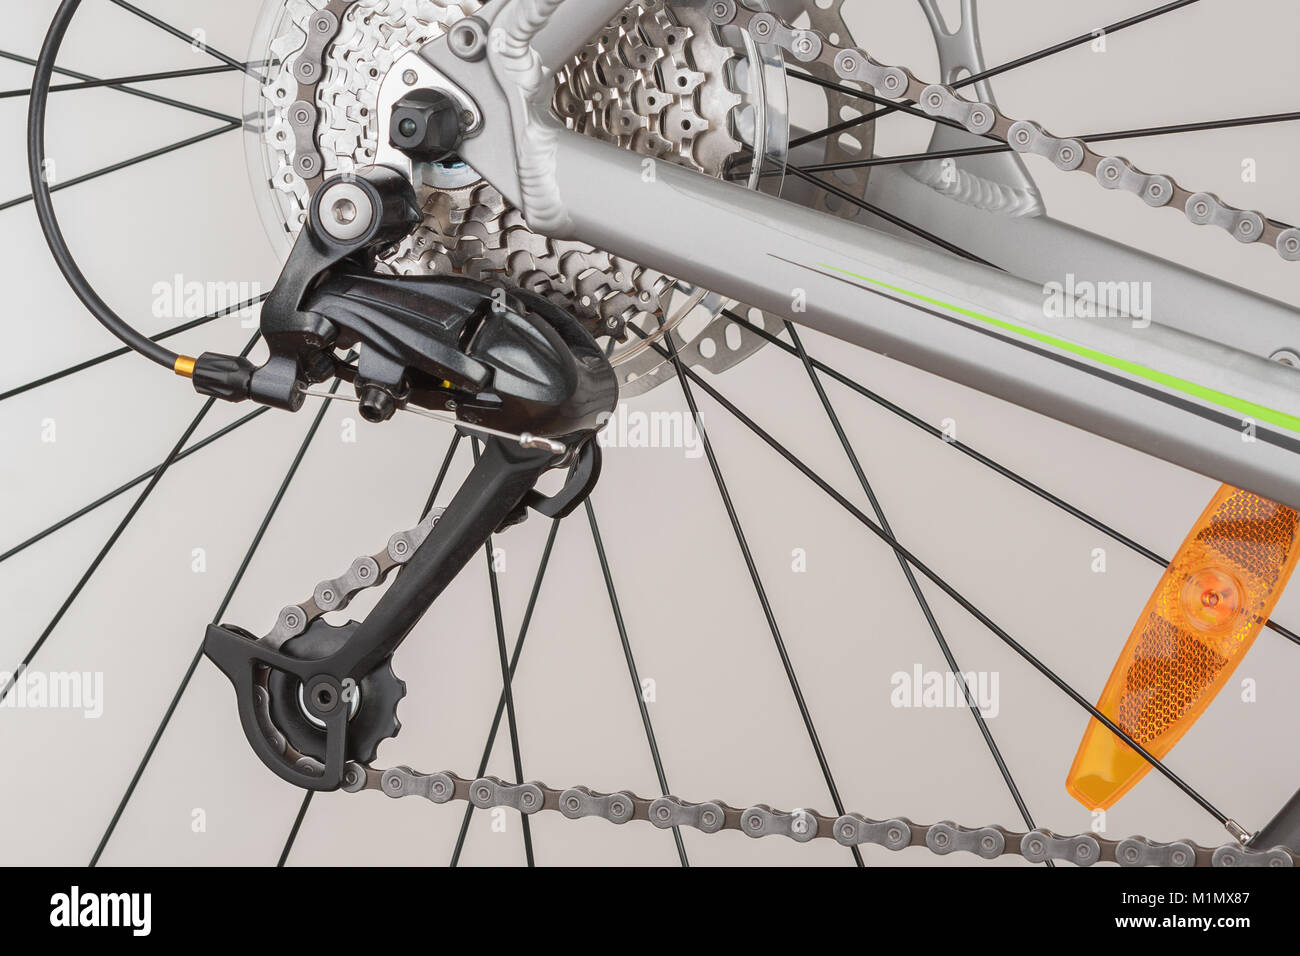 Close up of 9-speed cassette and rear derailleur on rear wheel of bike,  studio photo. - Stock Image